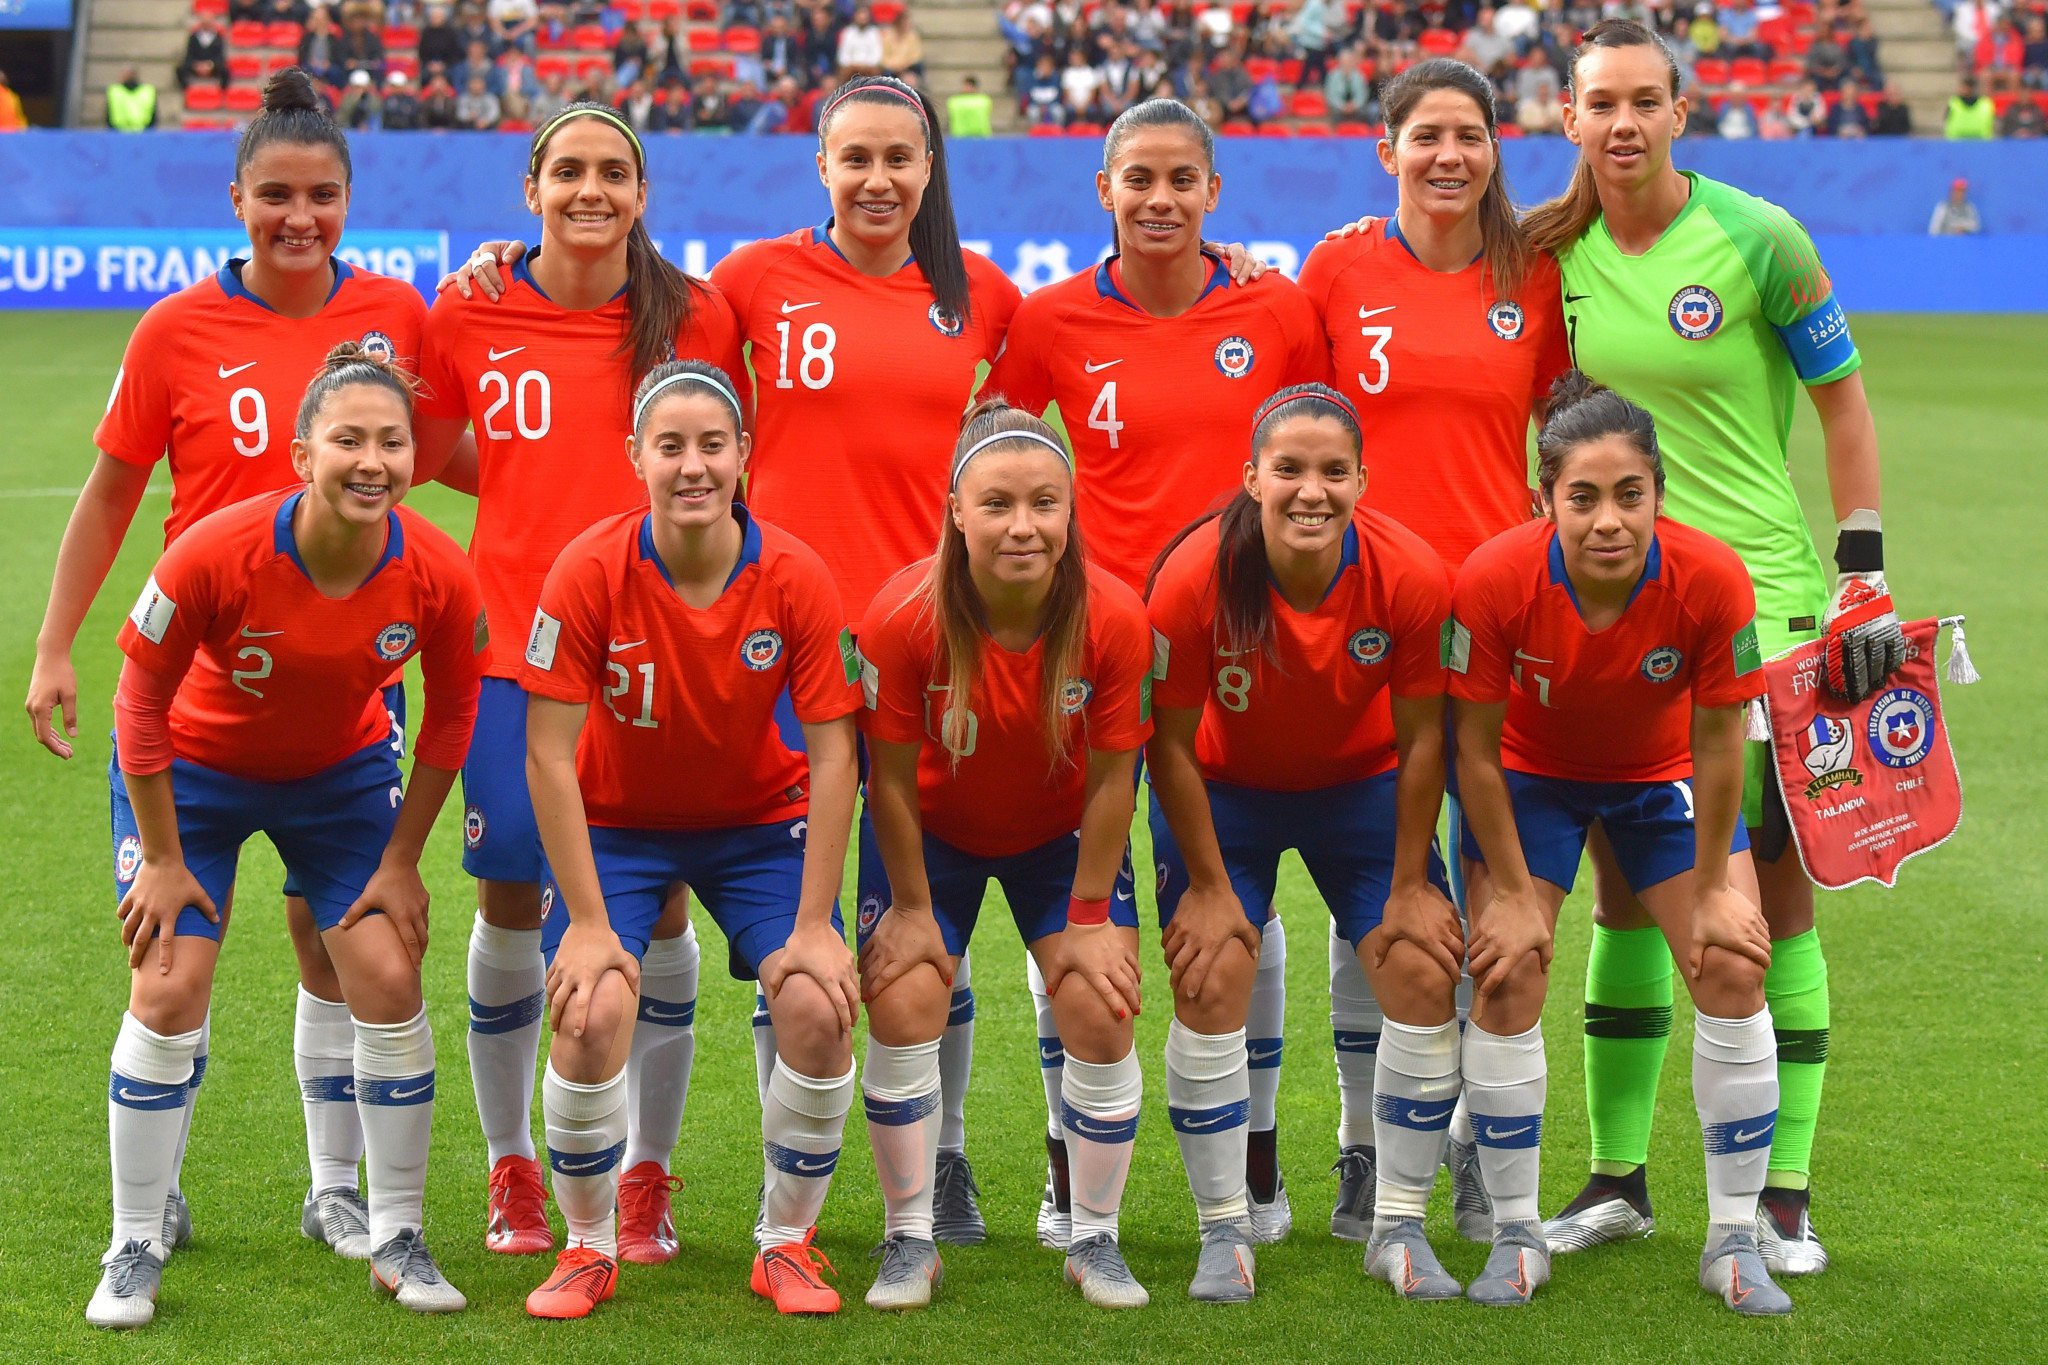 Chile beat Cameroon to earn last women's football berth at Tokyo 2020